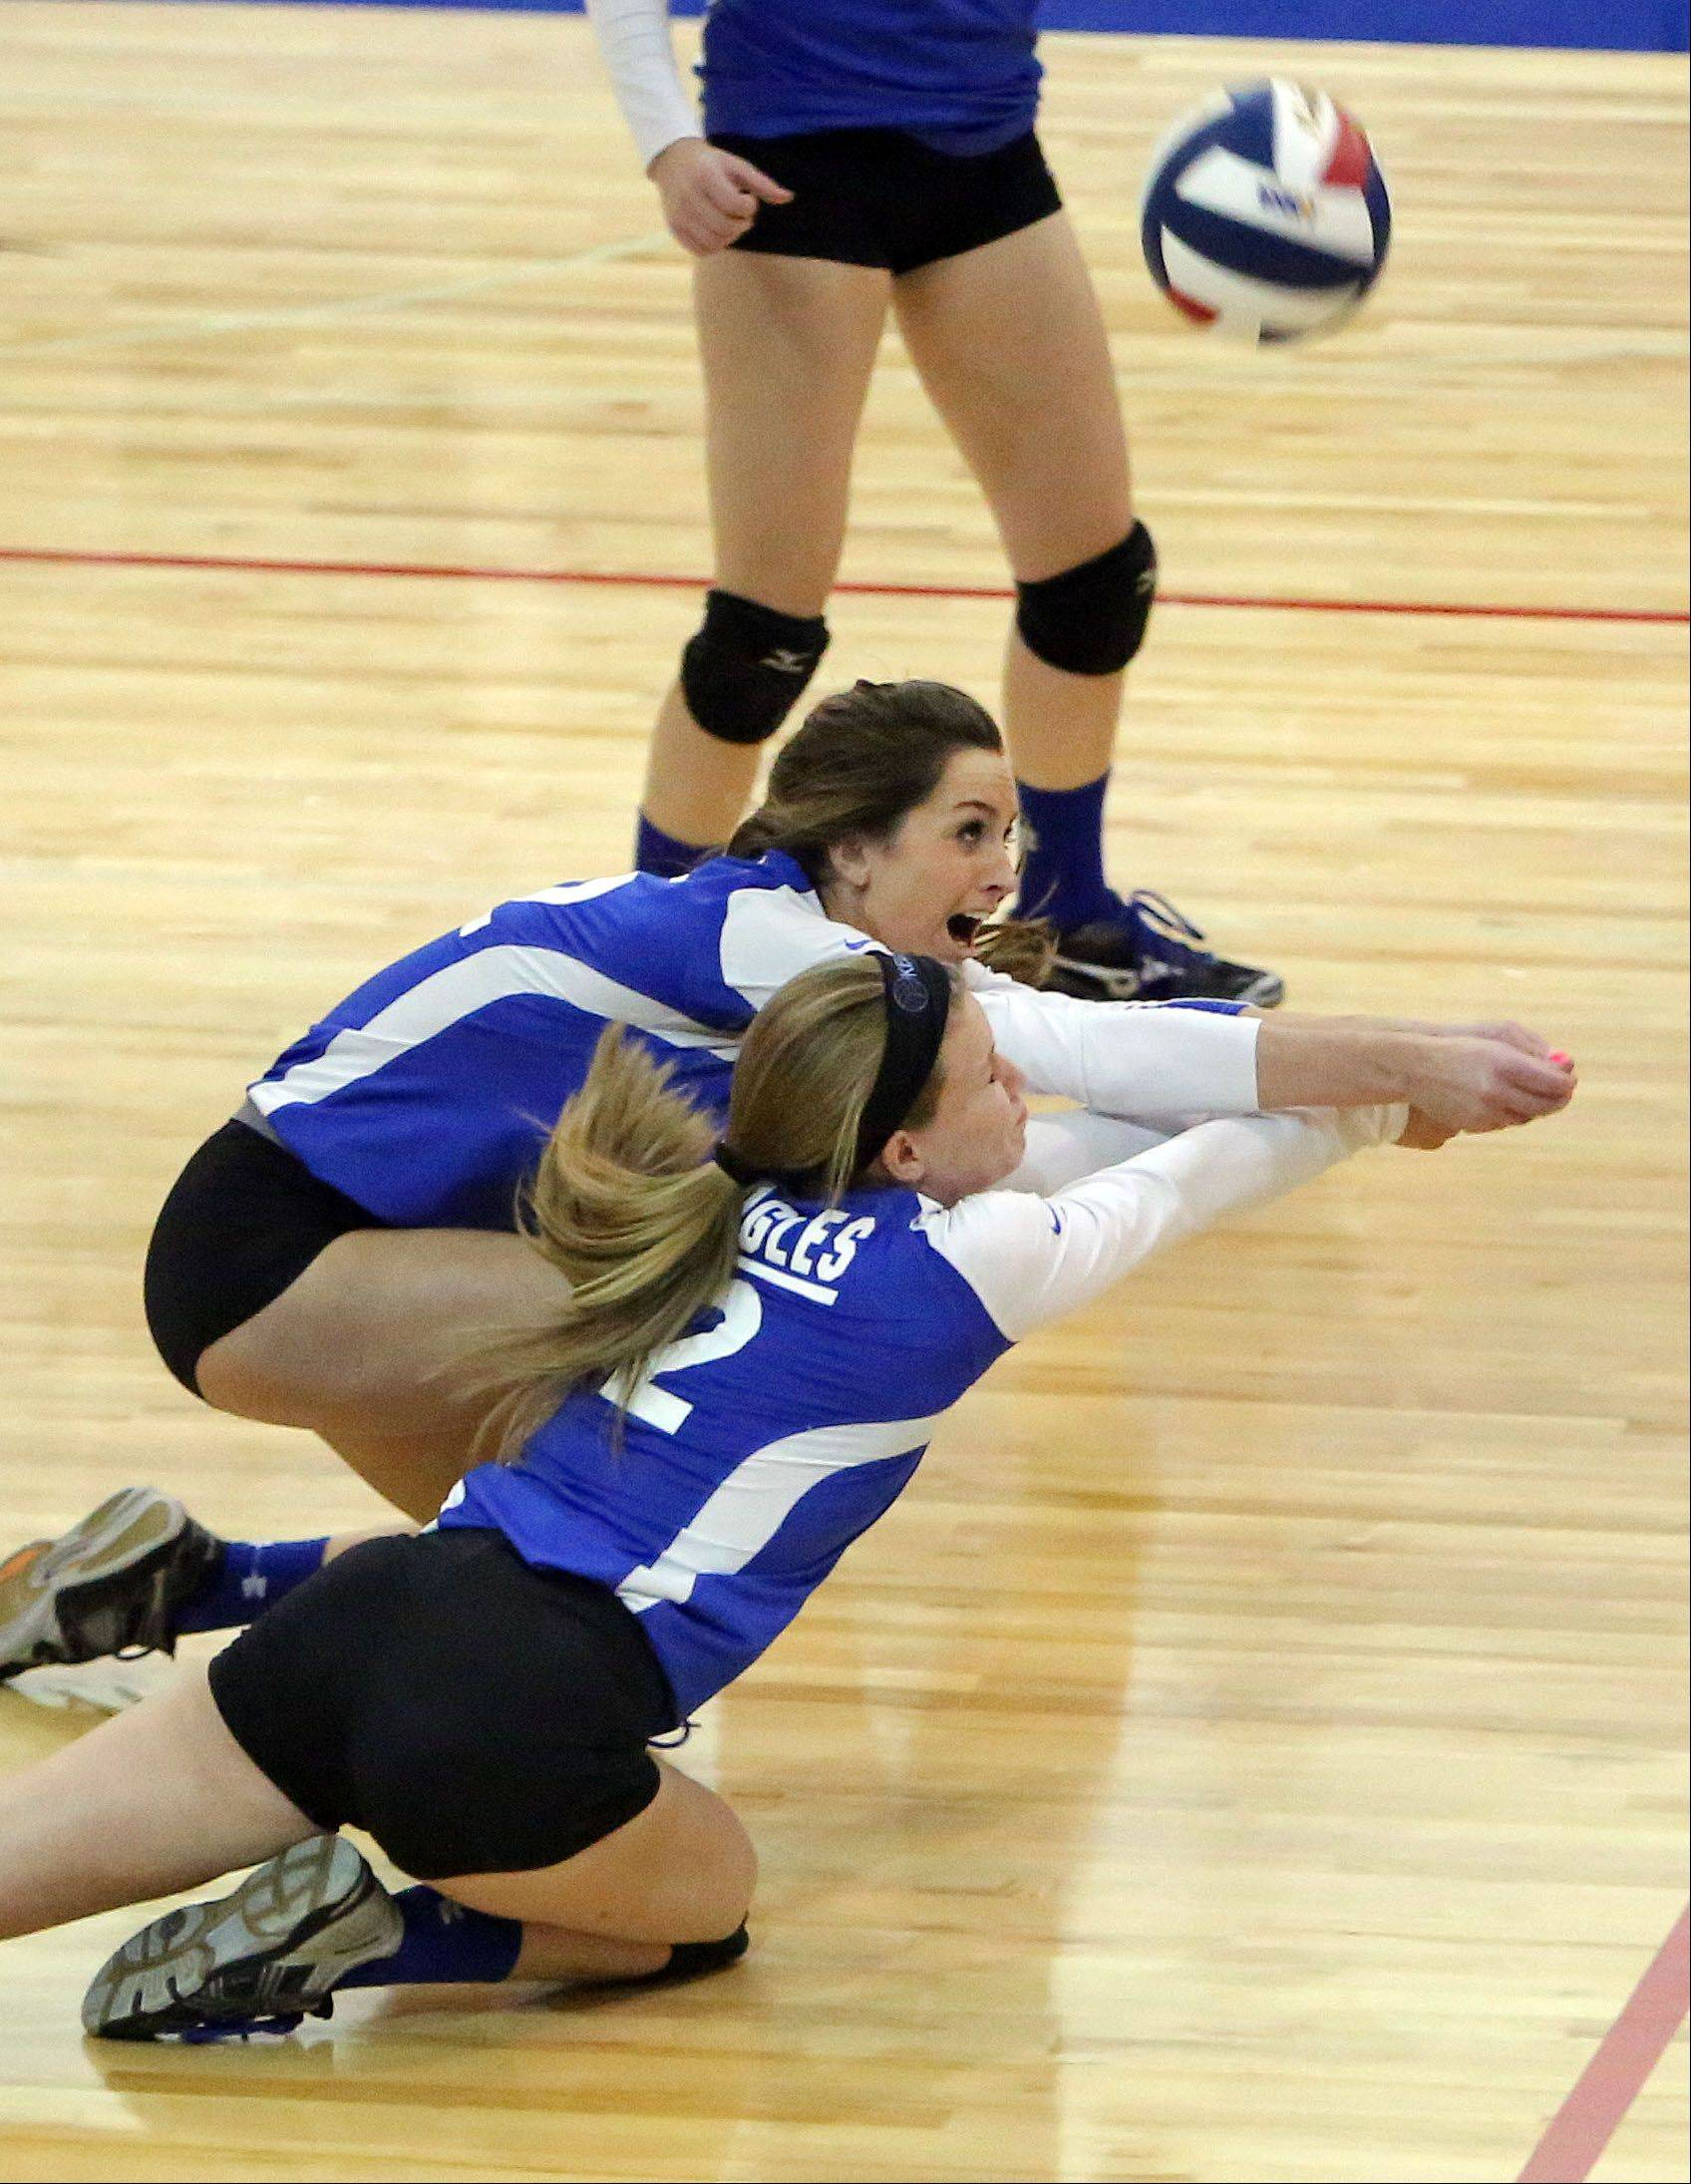 Lakes' Haley Halberg, left, and Lisa Buehler go for a loose ball during the girls volleyball regional semifinal game Tuesday at Lakes.